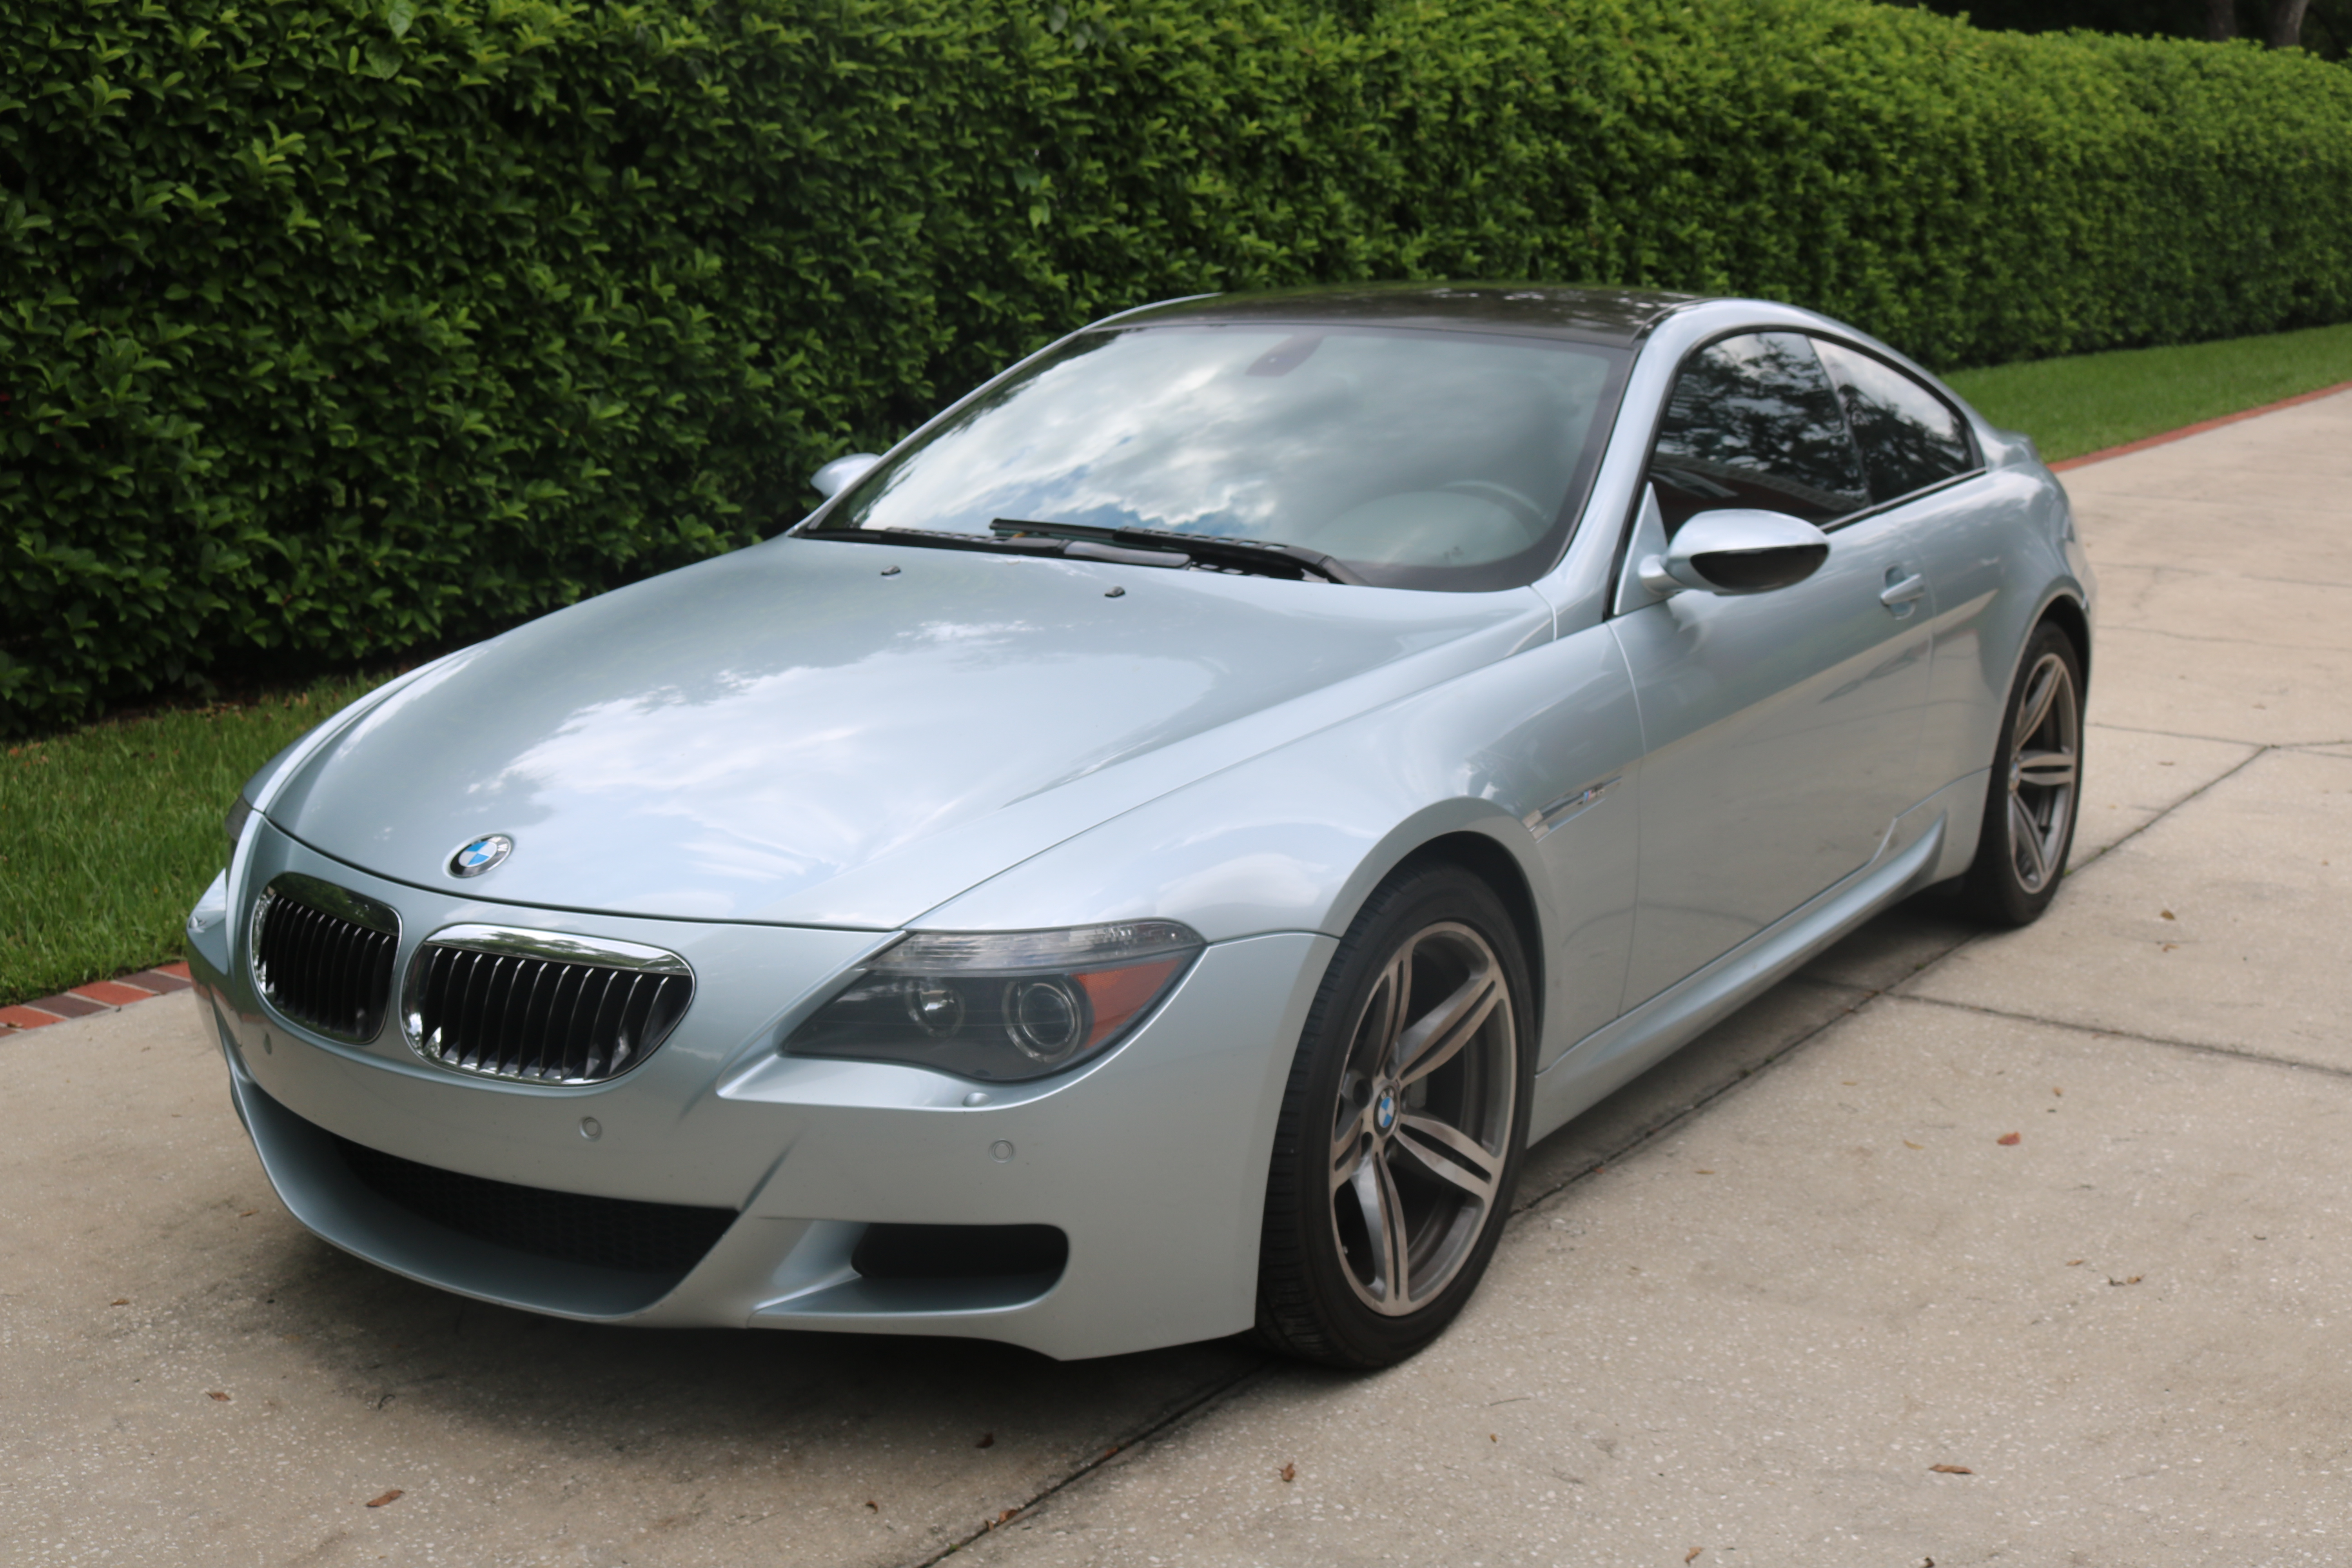 E63 0310 For Sale 2006 bmw m6 for sale  BMW M5 Forum and M6 Forums